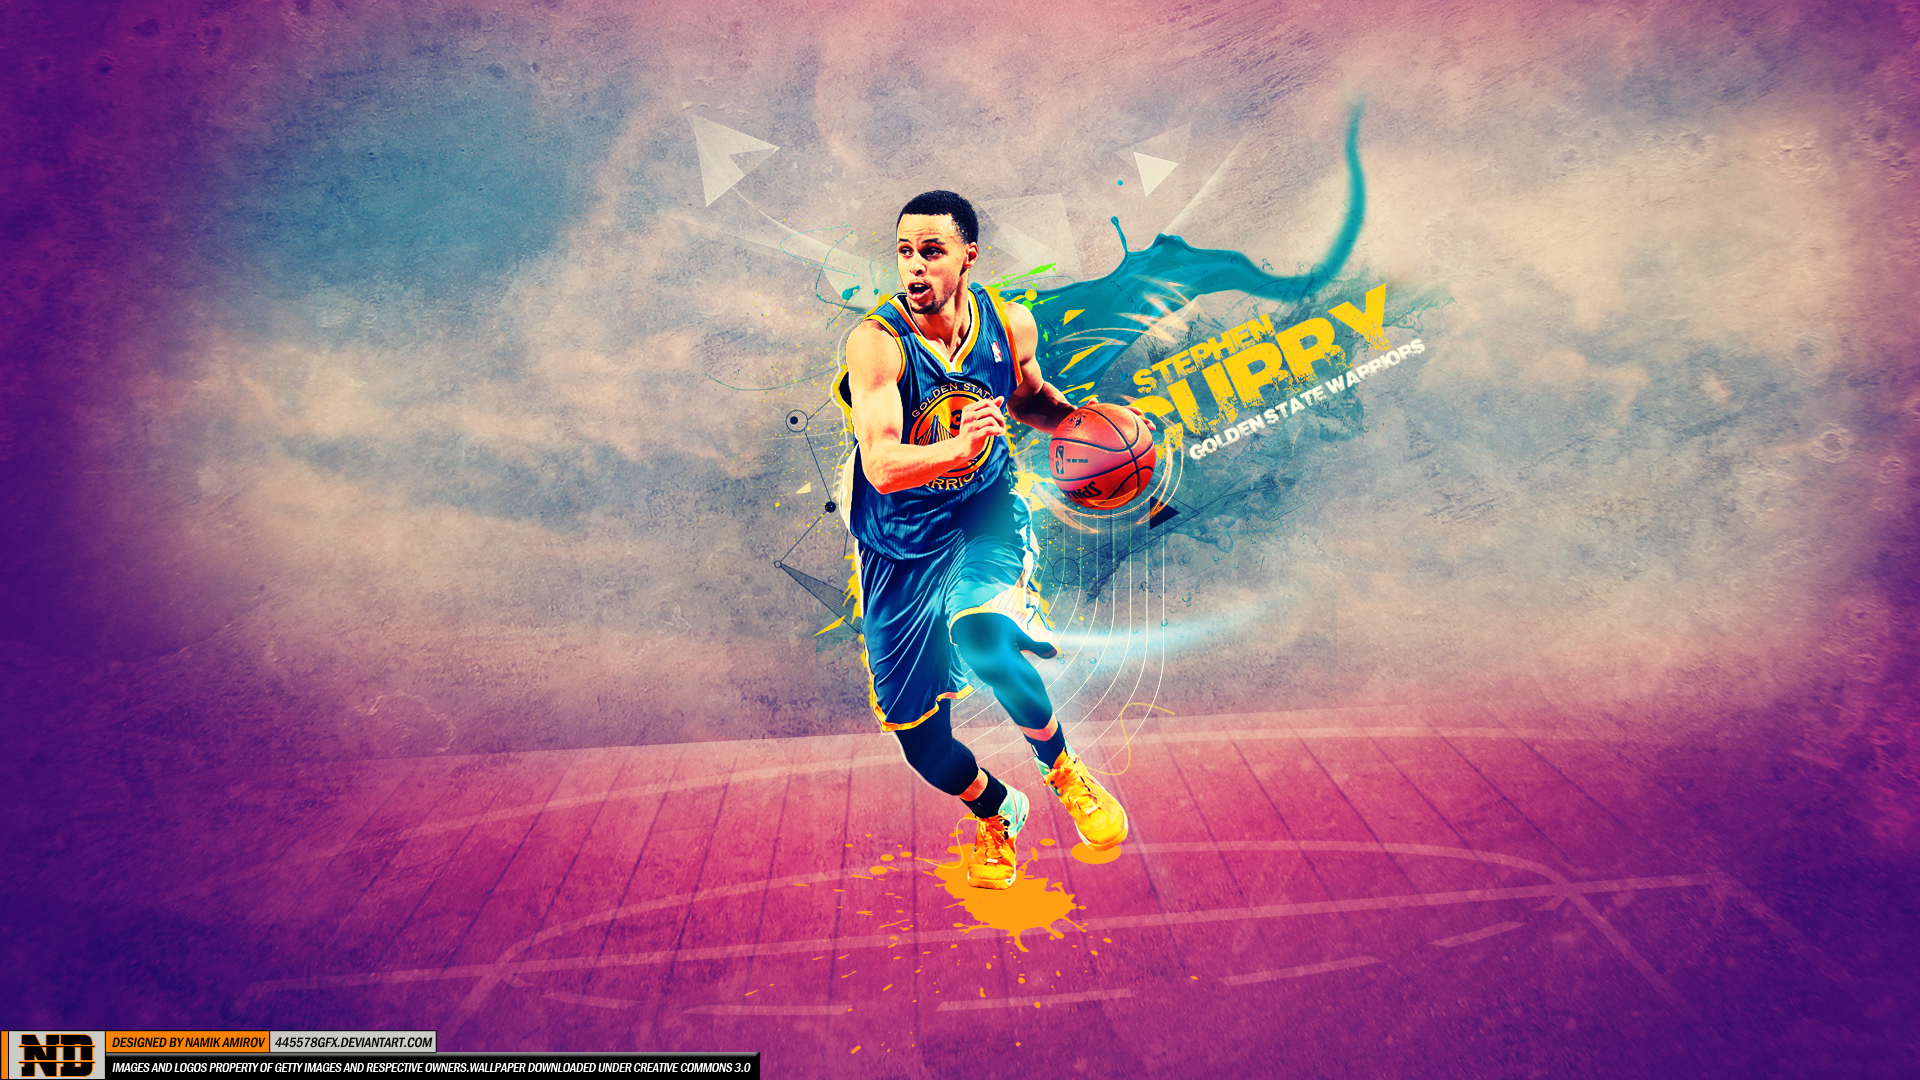 Preview Curry Pics, Xiao Olsen